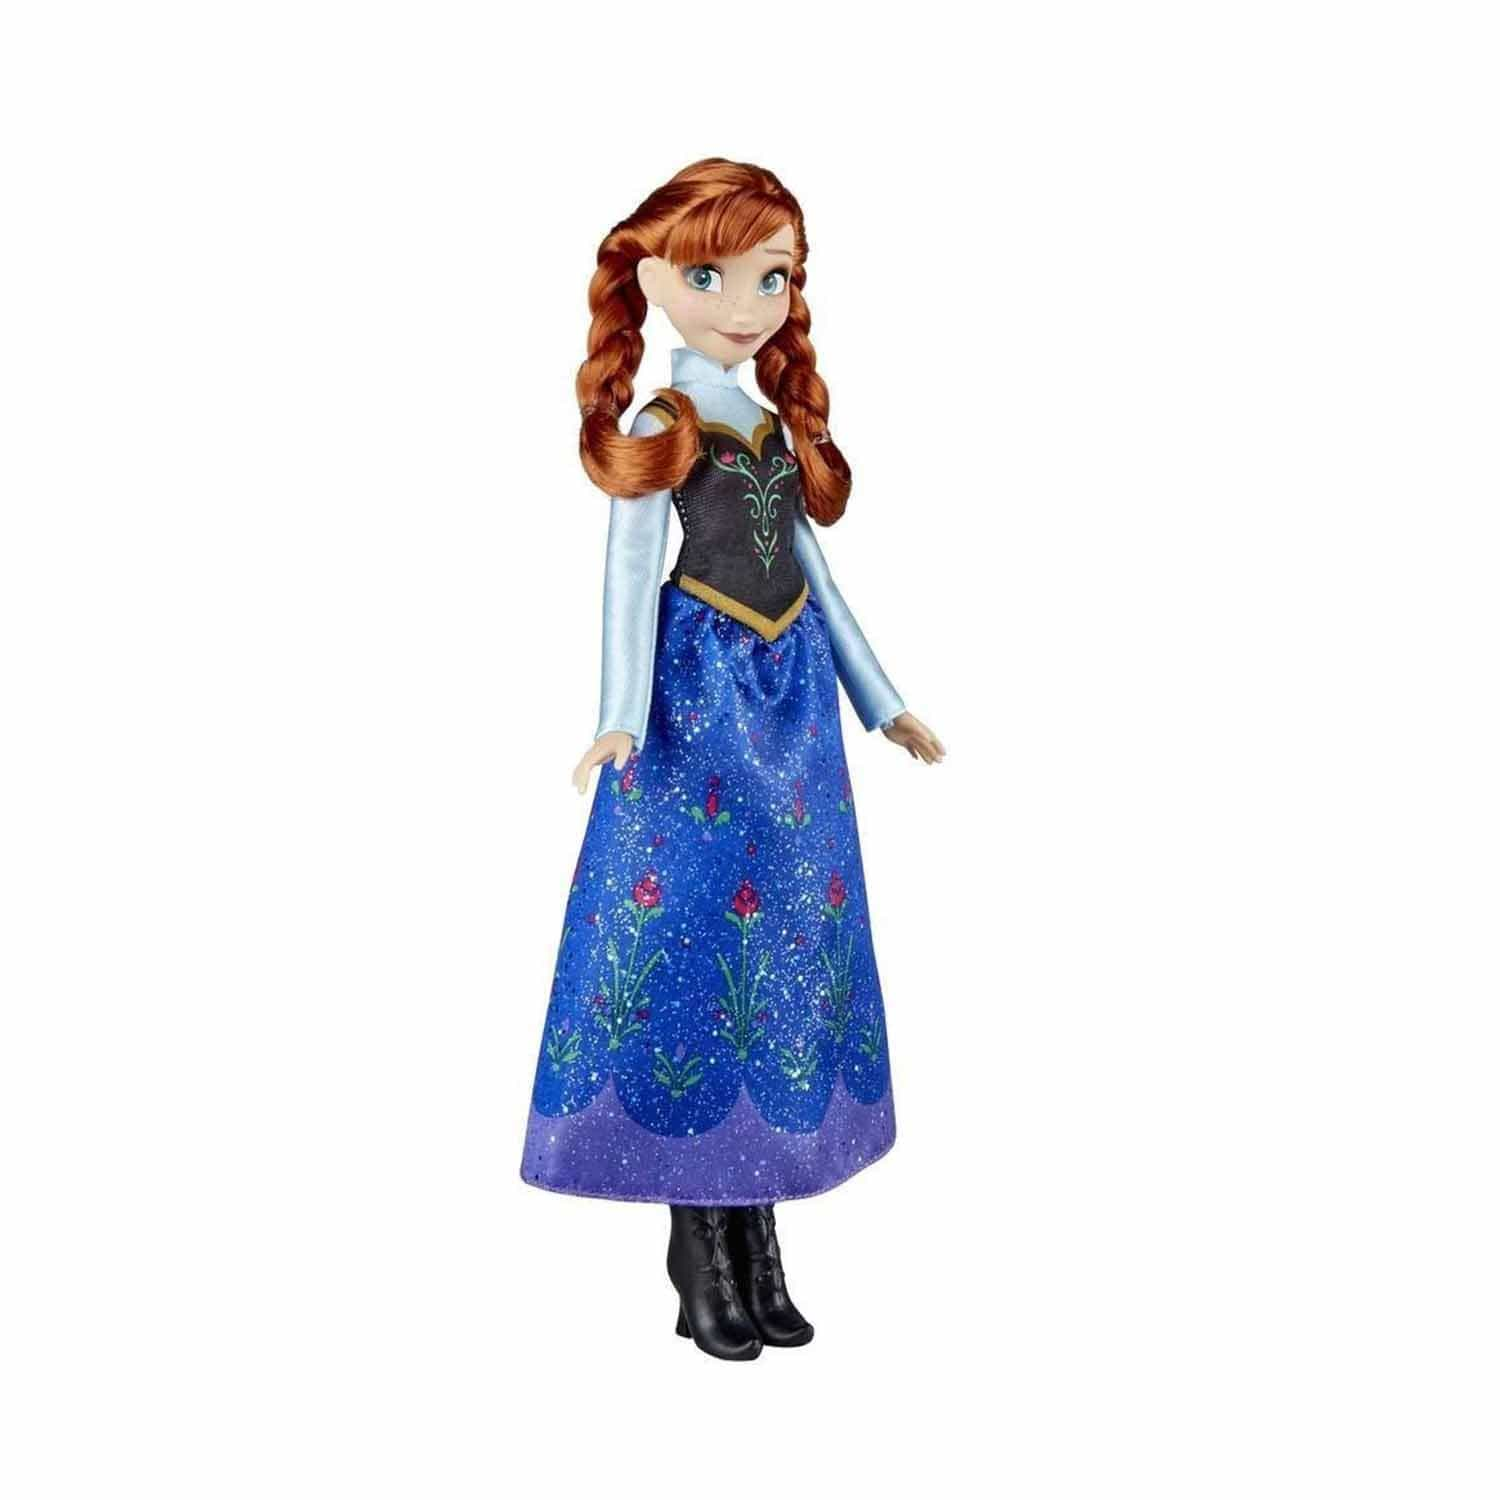 Dısney Frozen Anna